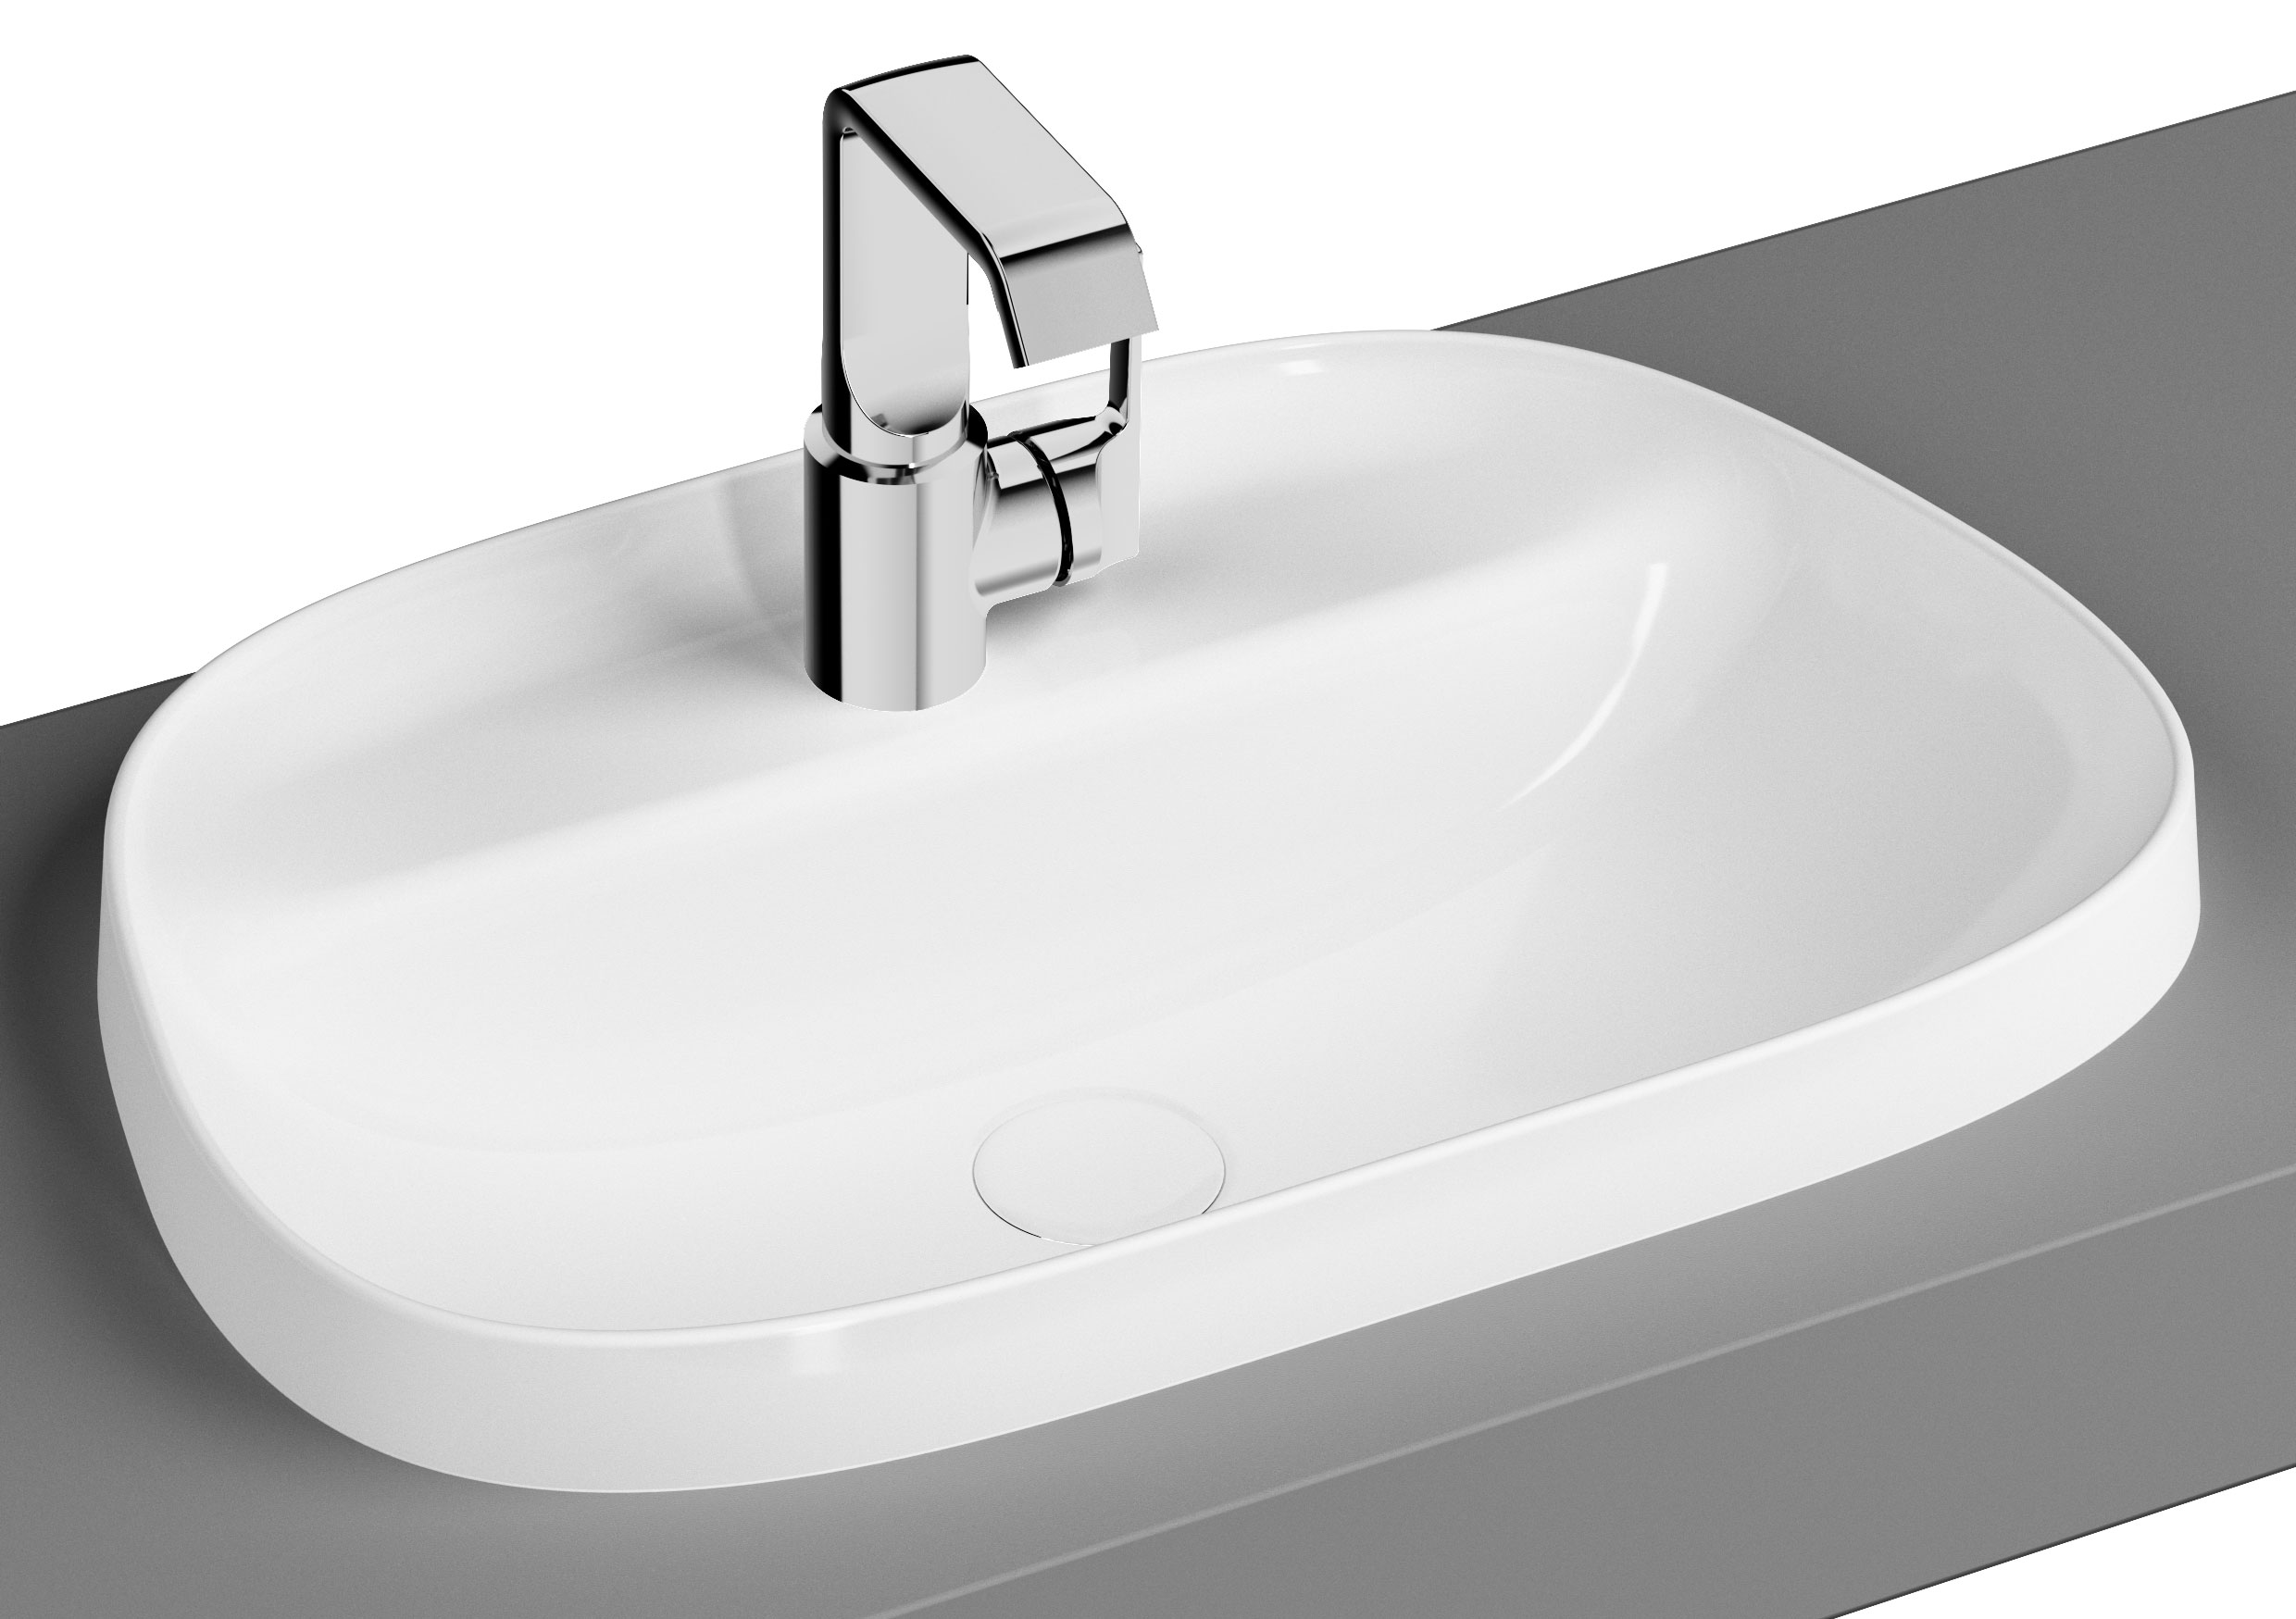 click on TV Countertop Basin image to enlarge